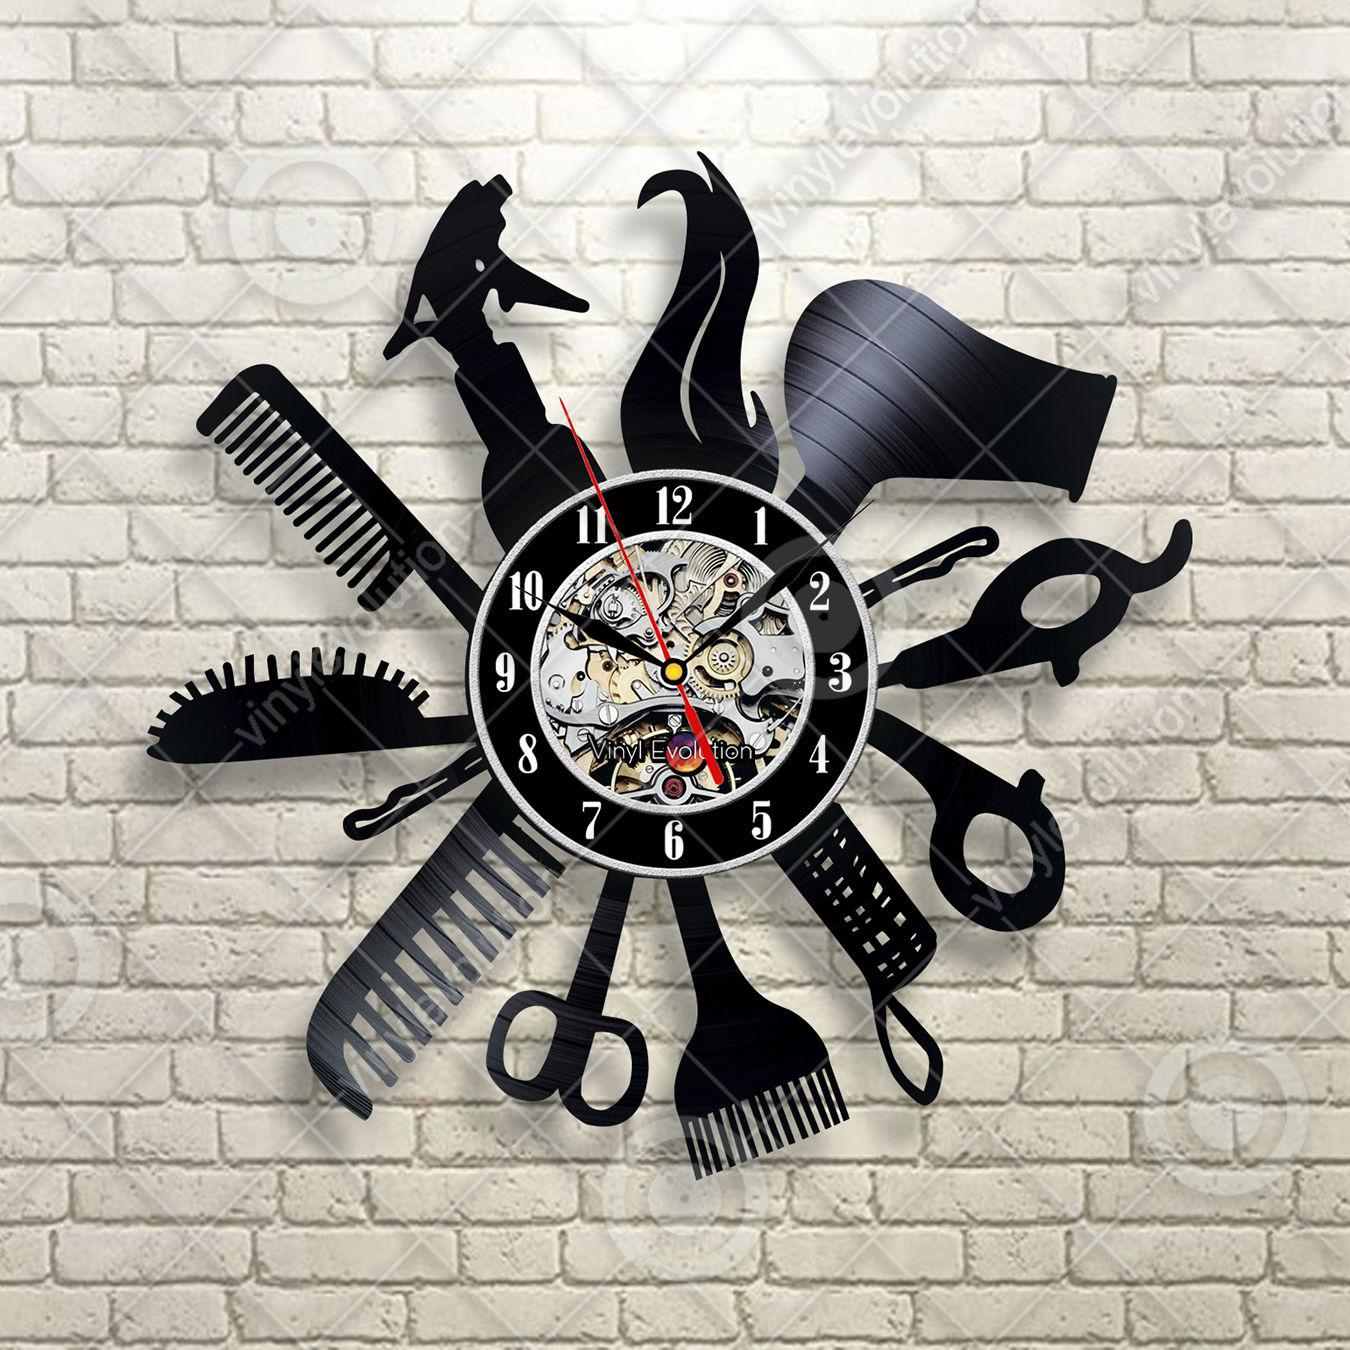 office wall clocks large. Hairdresser Barber Shop Salon Vinyl Wall Clock,Best Christmas Gift For Friends,Record,Modern Special Design,Room,Home And Office Decoration Big Clock Clocks Large 2